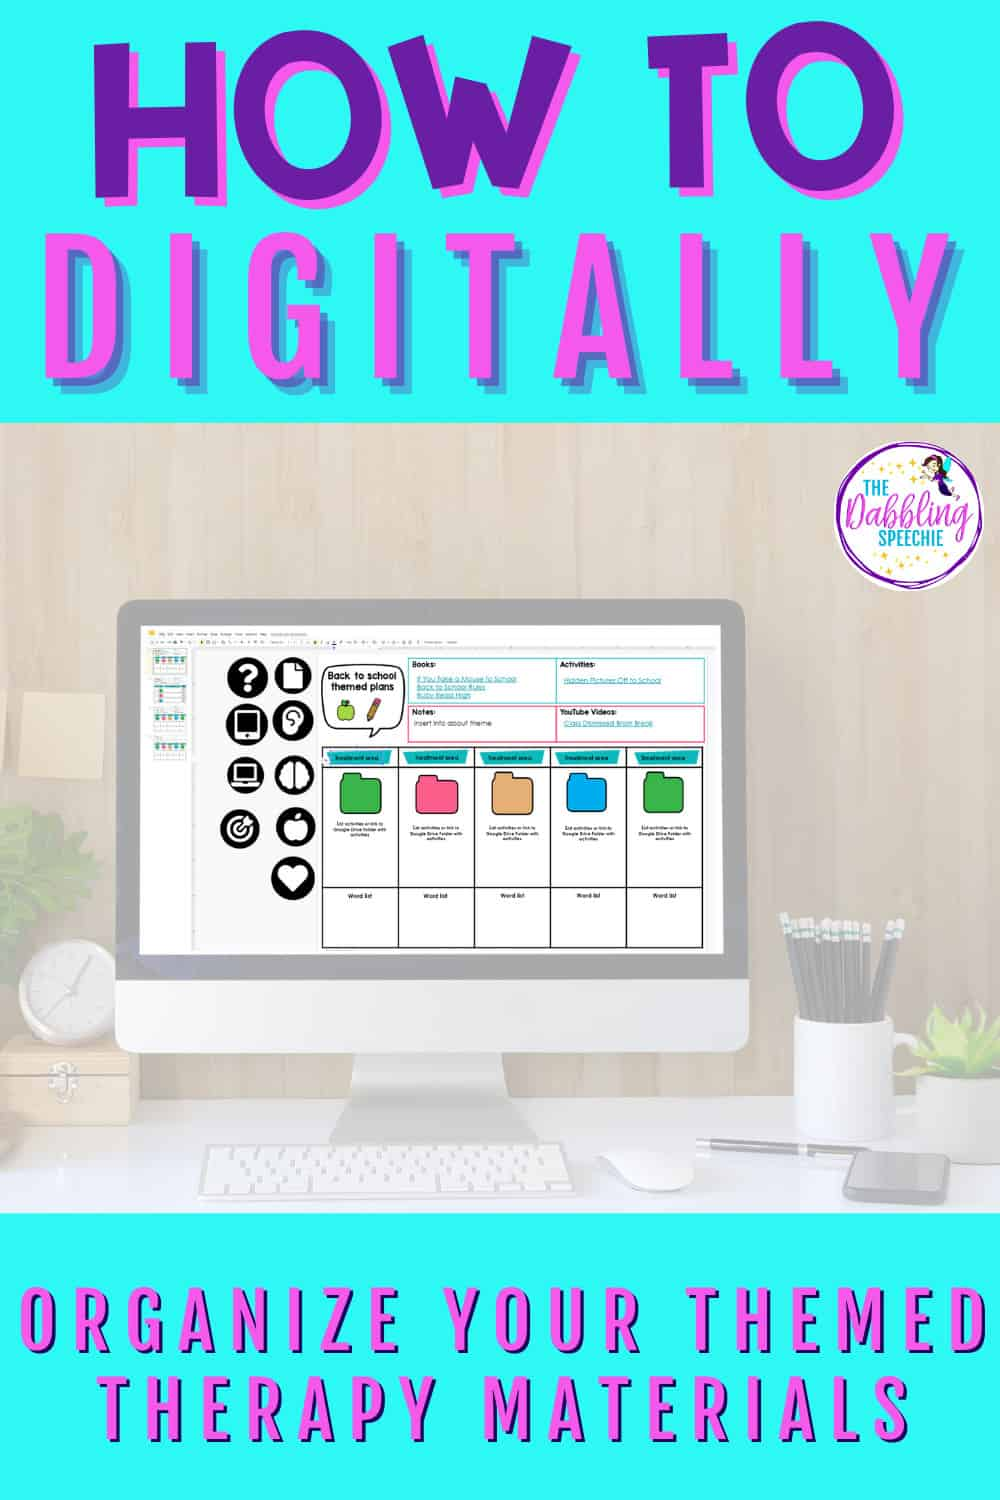 Digital speech therapy organization for your themed therapy materials has never been easier with this tutorial!